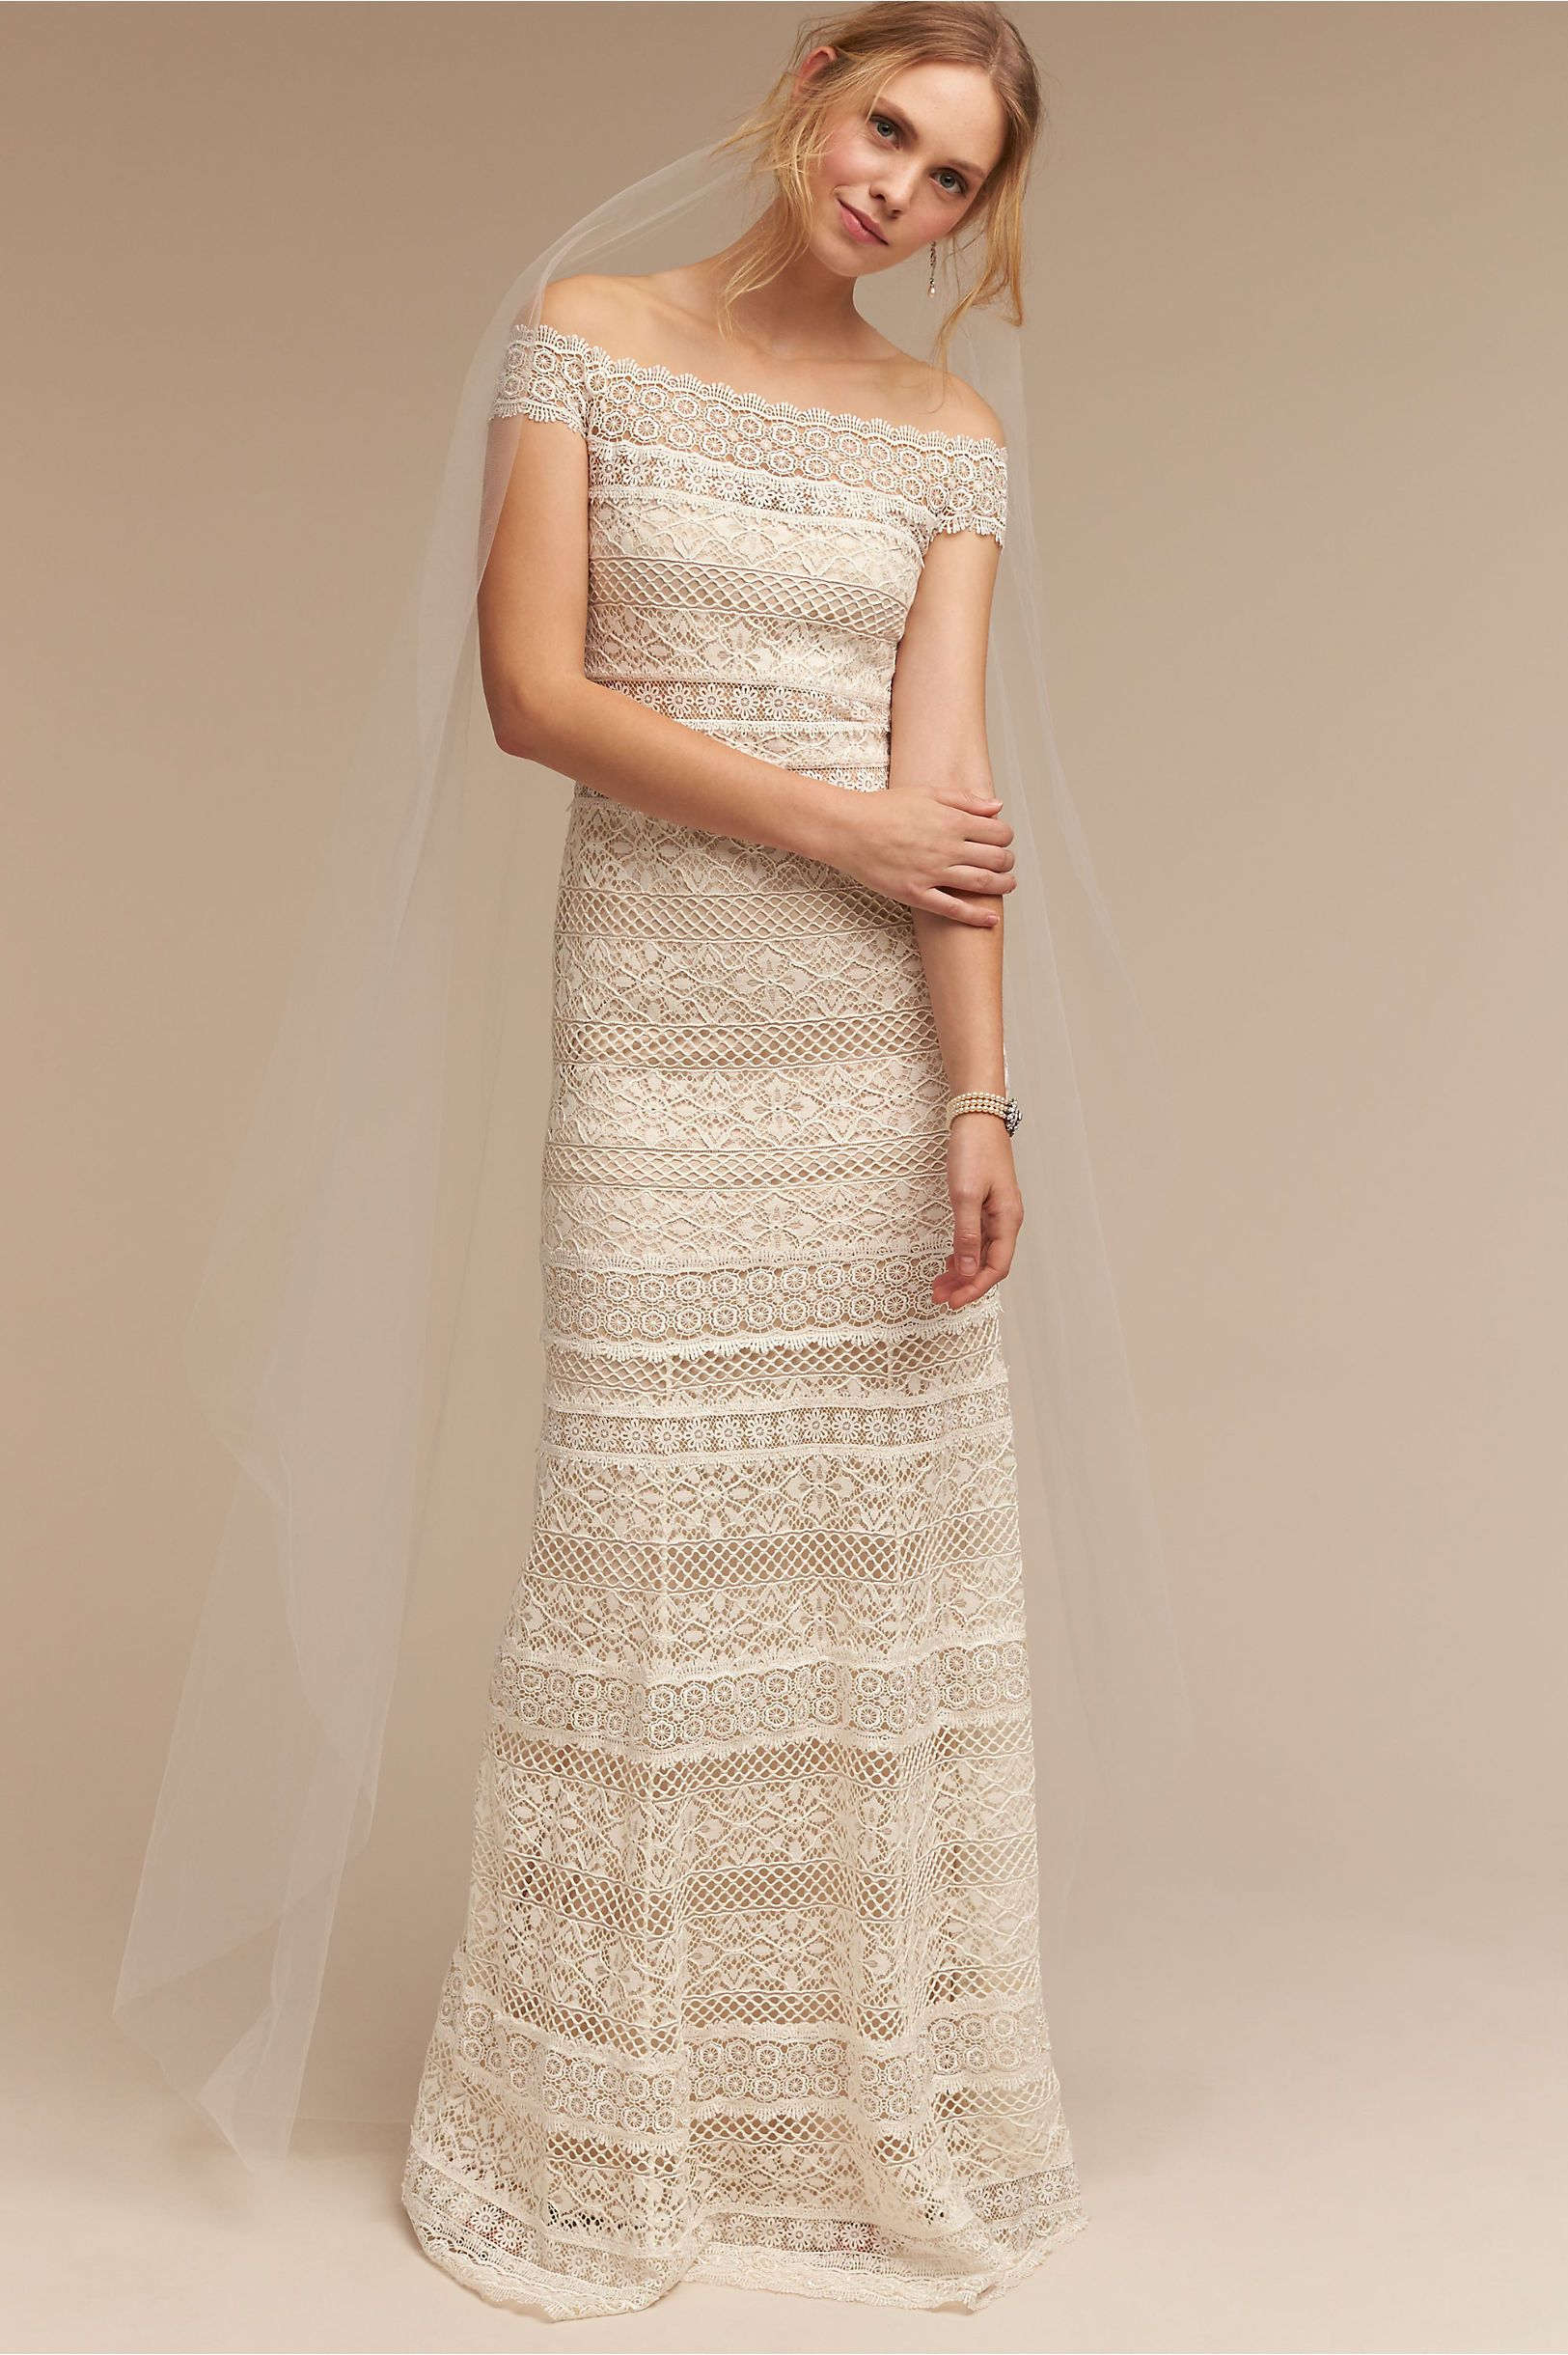 a06d13a5094f BHLDN Ivory Sky Mist Veil in Shoes & Accessories | BHLDN | McKey's ...